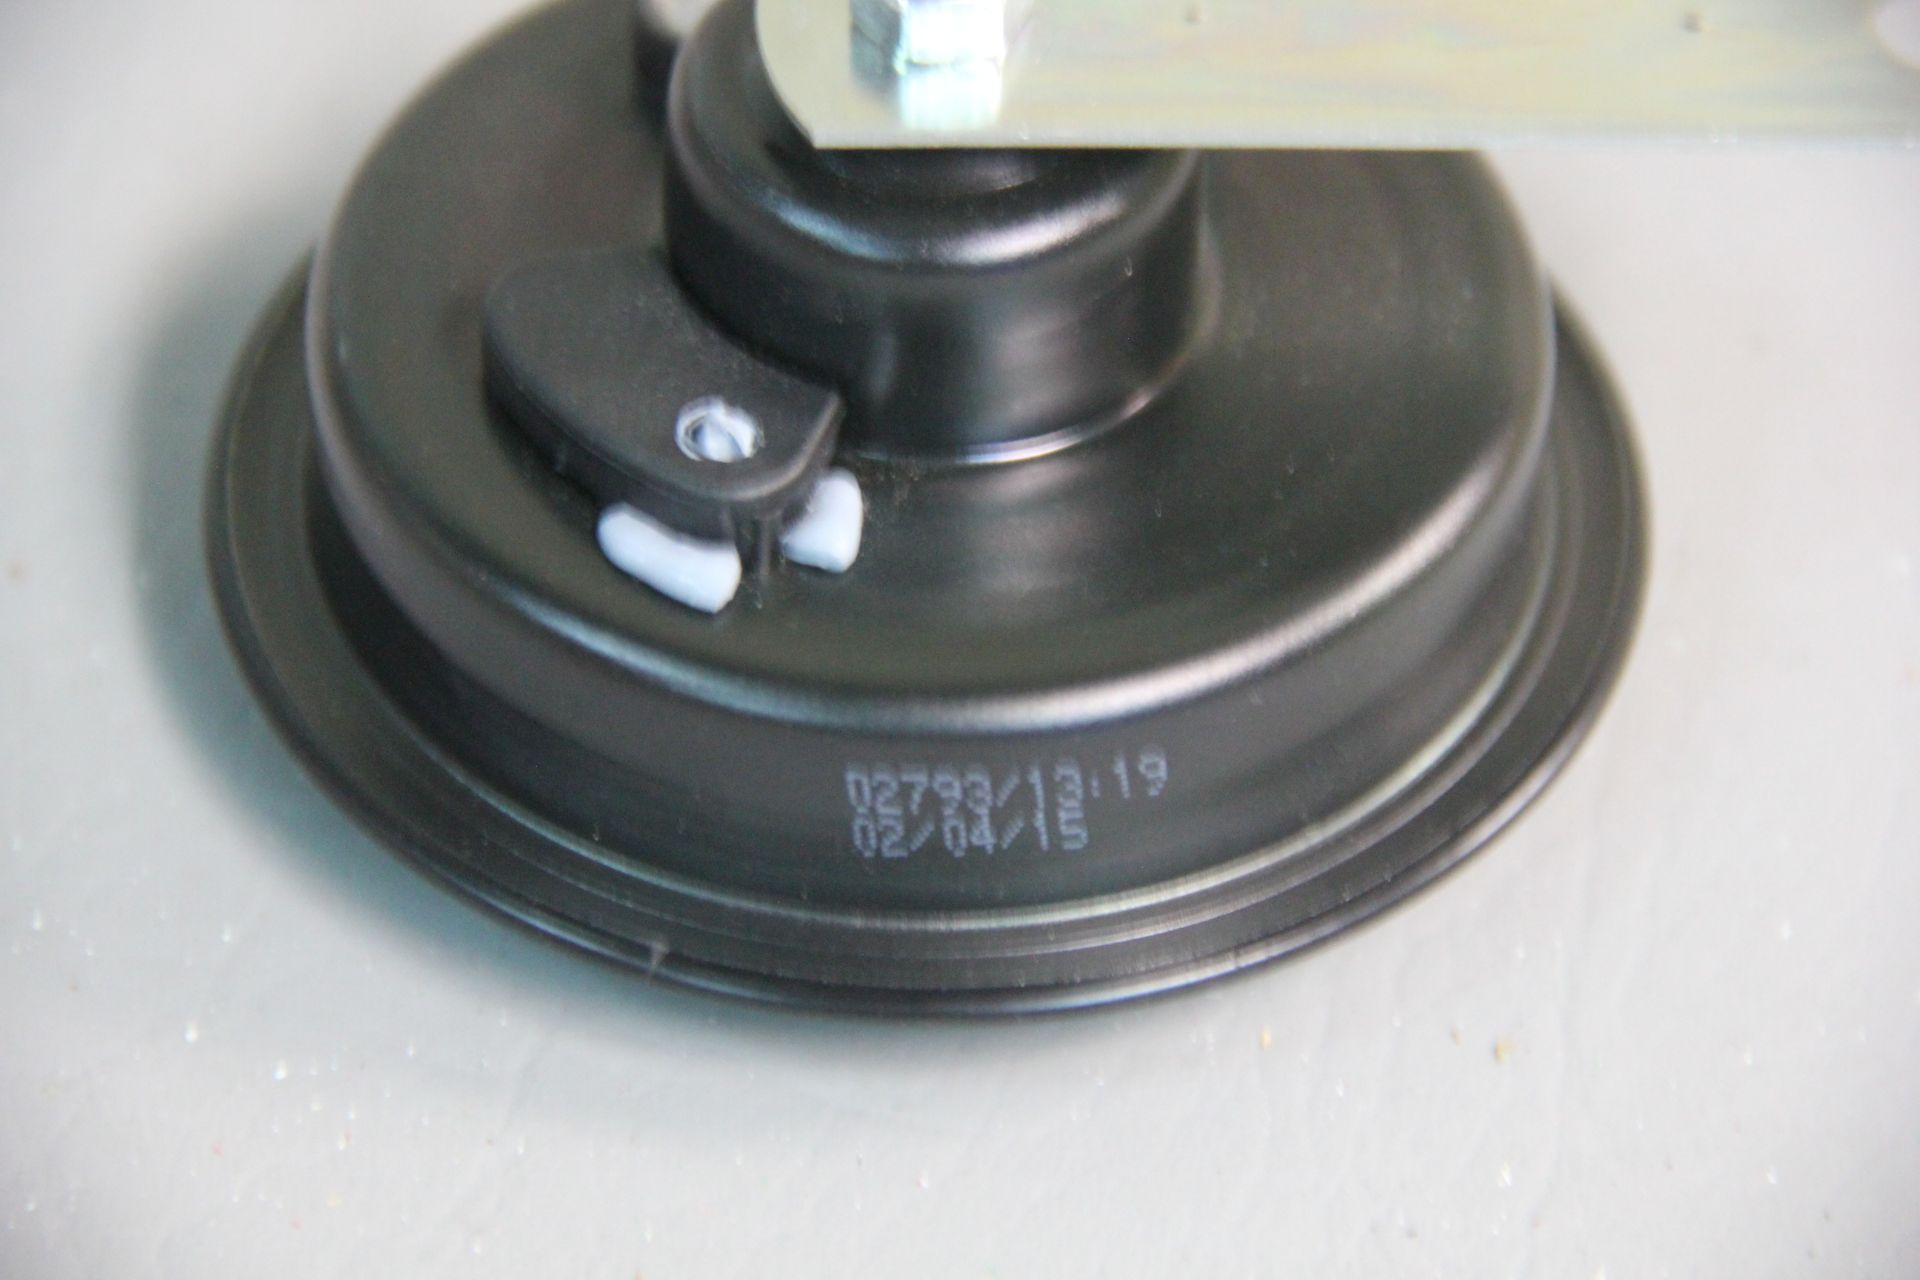 NEW SEGER INDUSTRIAL DISC SAFETY HORN - Image 4 of 4